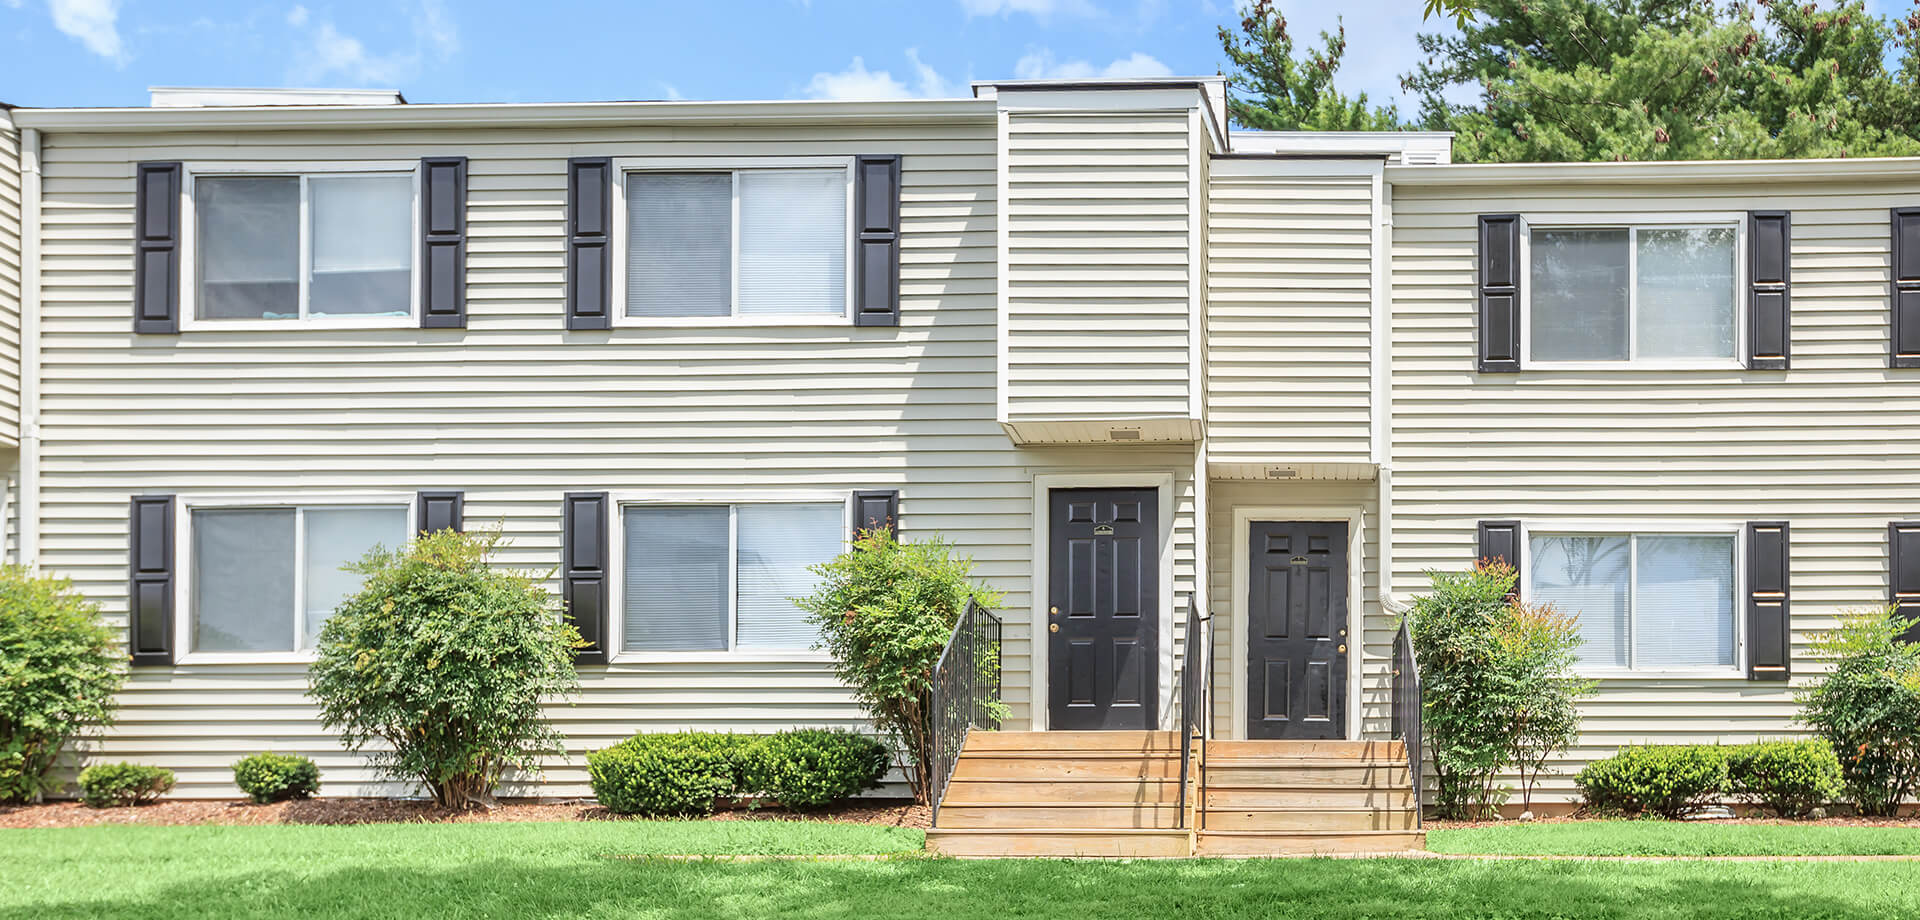 Longwood At Southern Hills Apartments For Rent In Nashville Tn